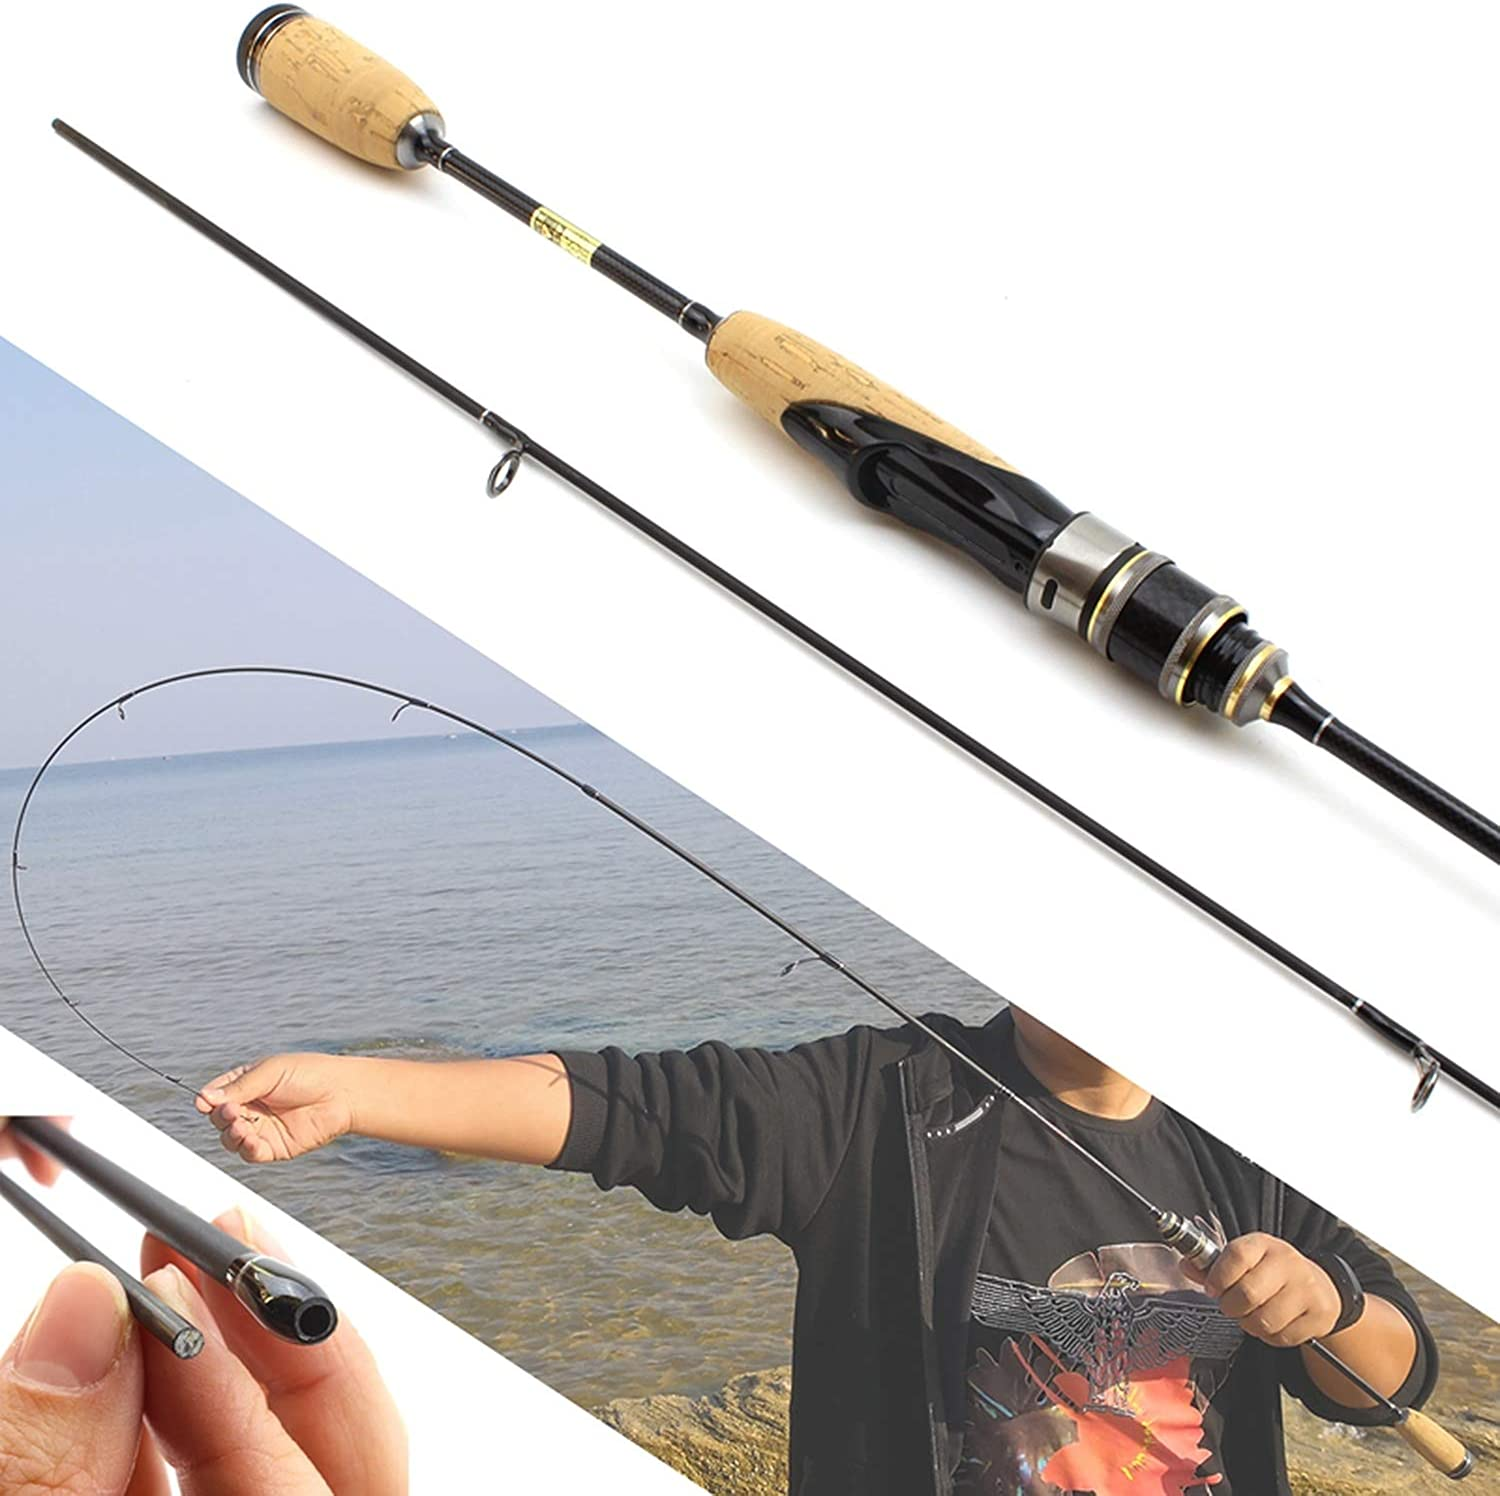 1.8M Wooden Handle Lure Rod Ultra Light Spinning Fishing Rod 26G Lure Weight 37Lb Line Weigh Carbon Rod Ul Power